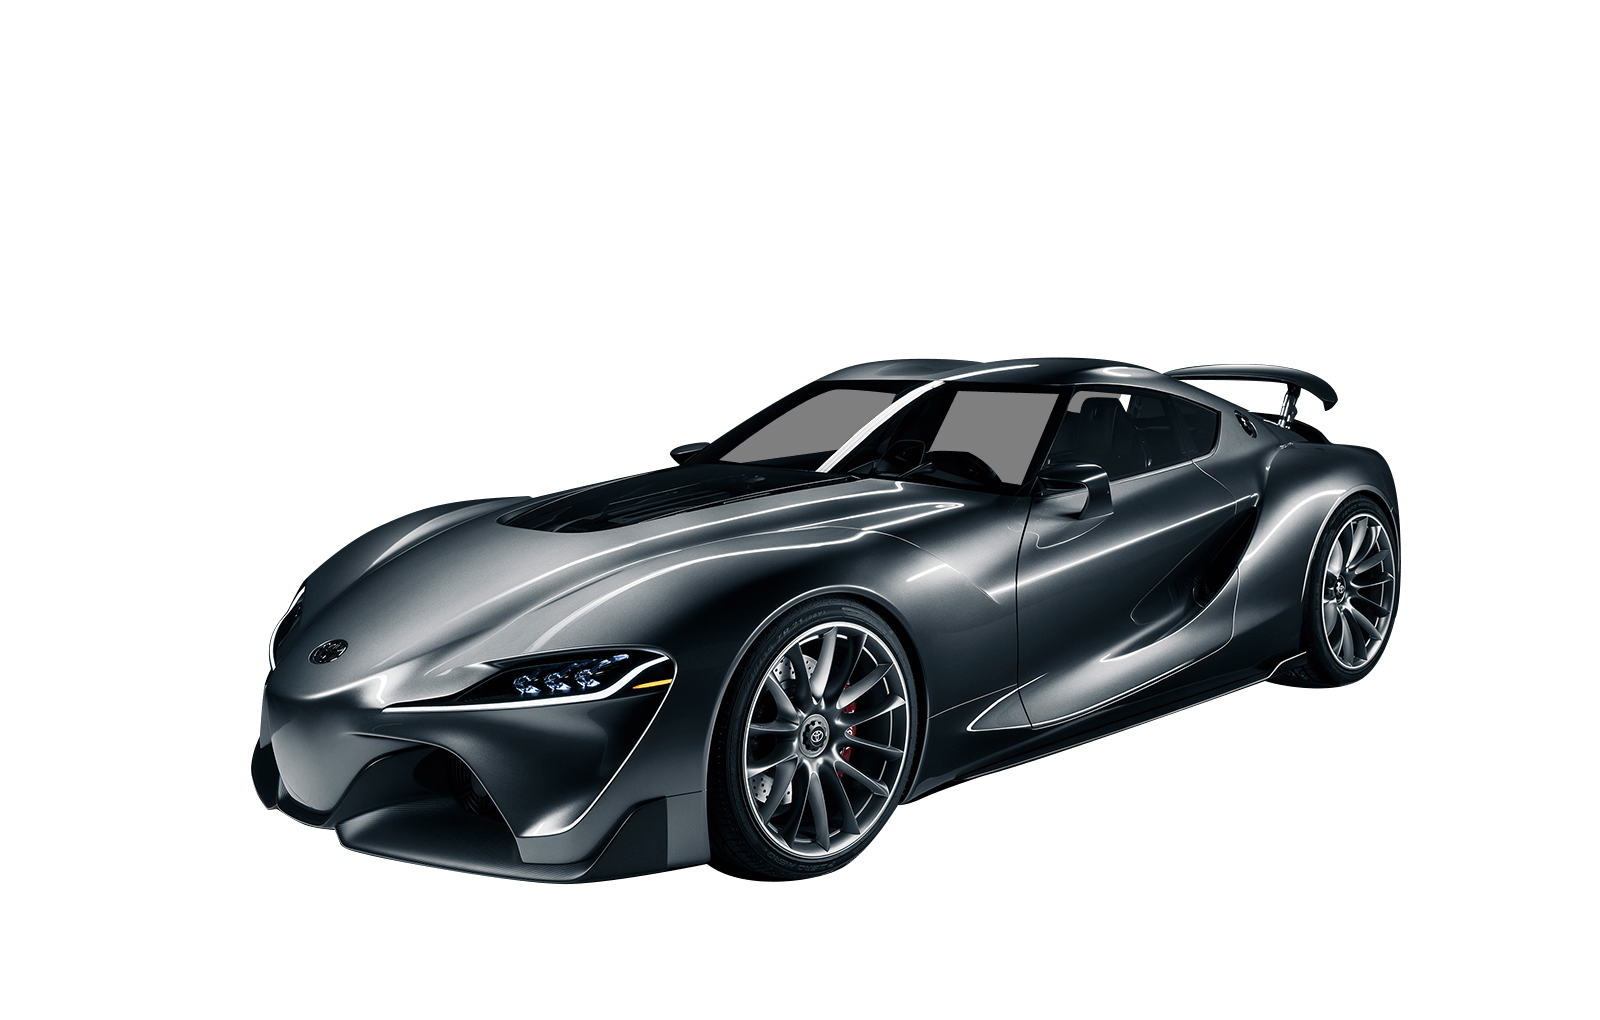 Toyota Ft-1 Price >> Visions of the future | History of Toyota sports cars | Toyota UK